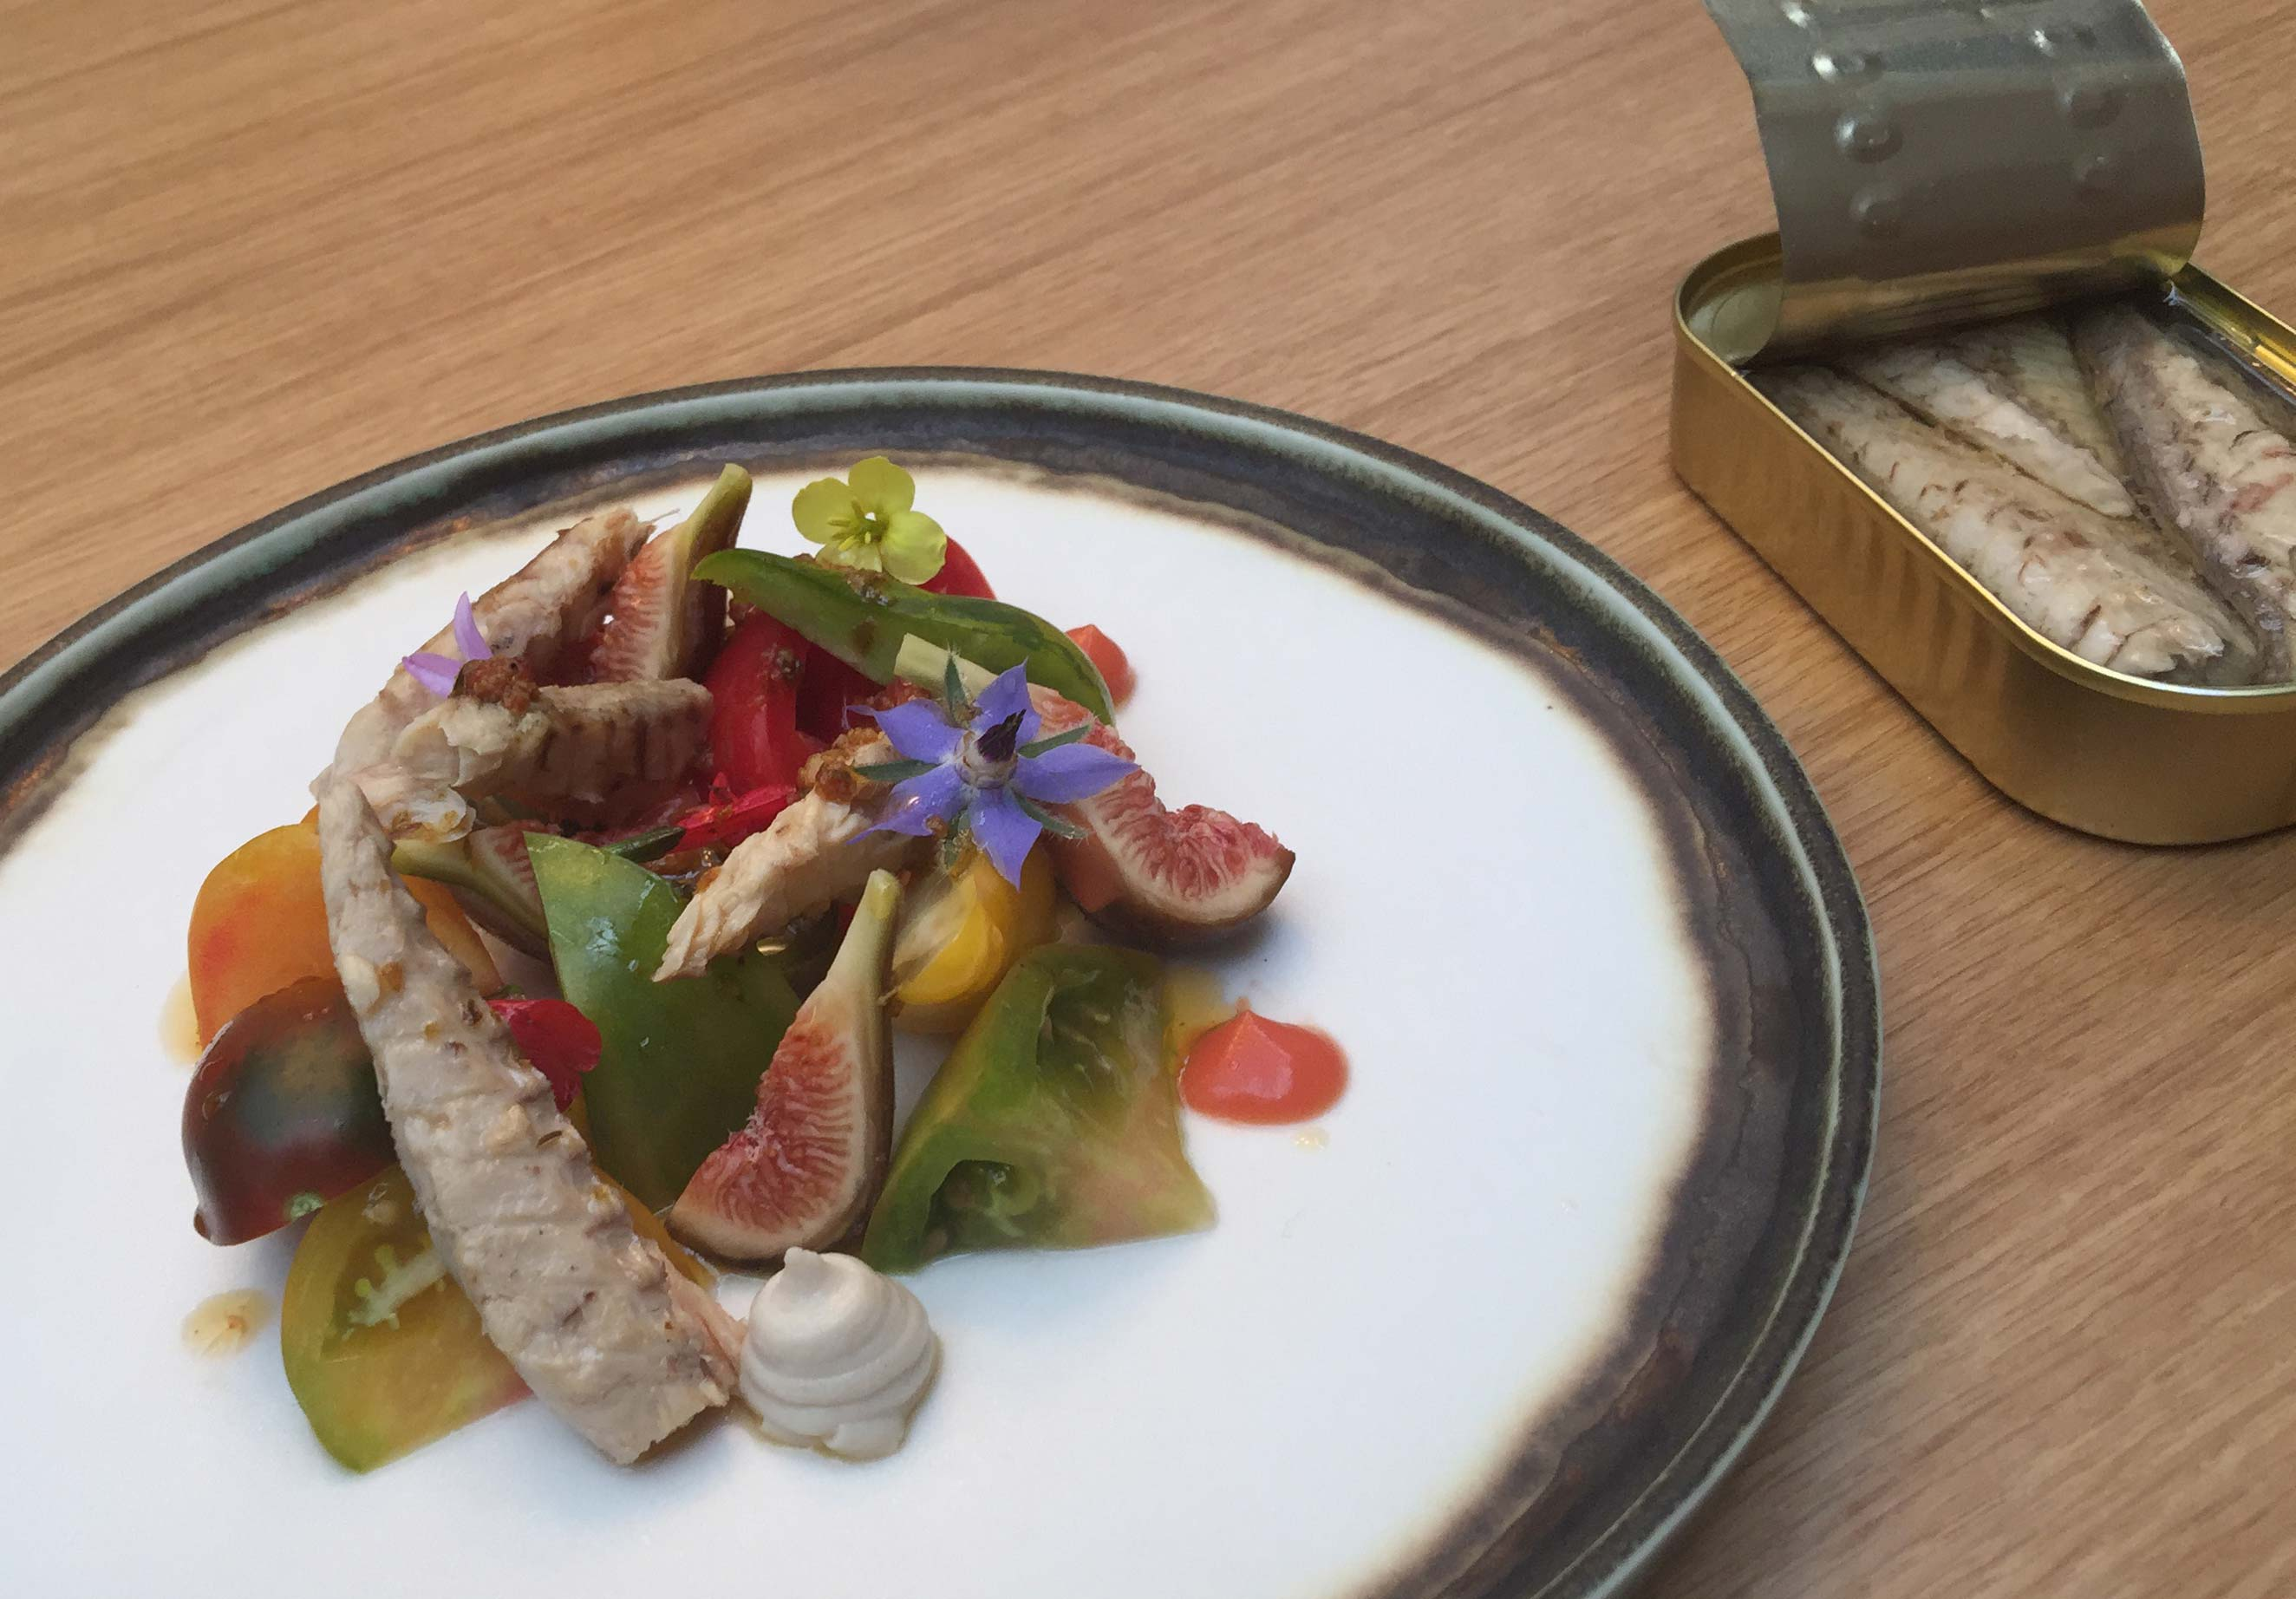 Mackerel salad with figs and tomatoes